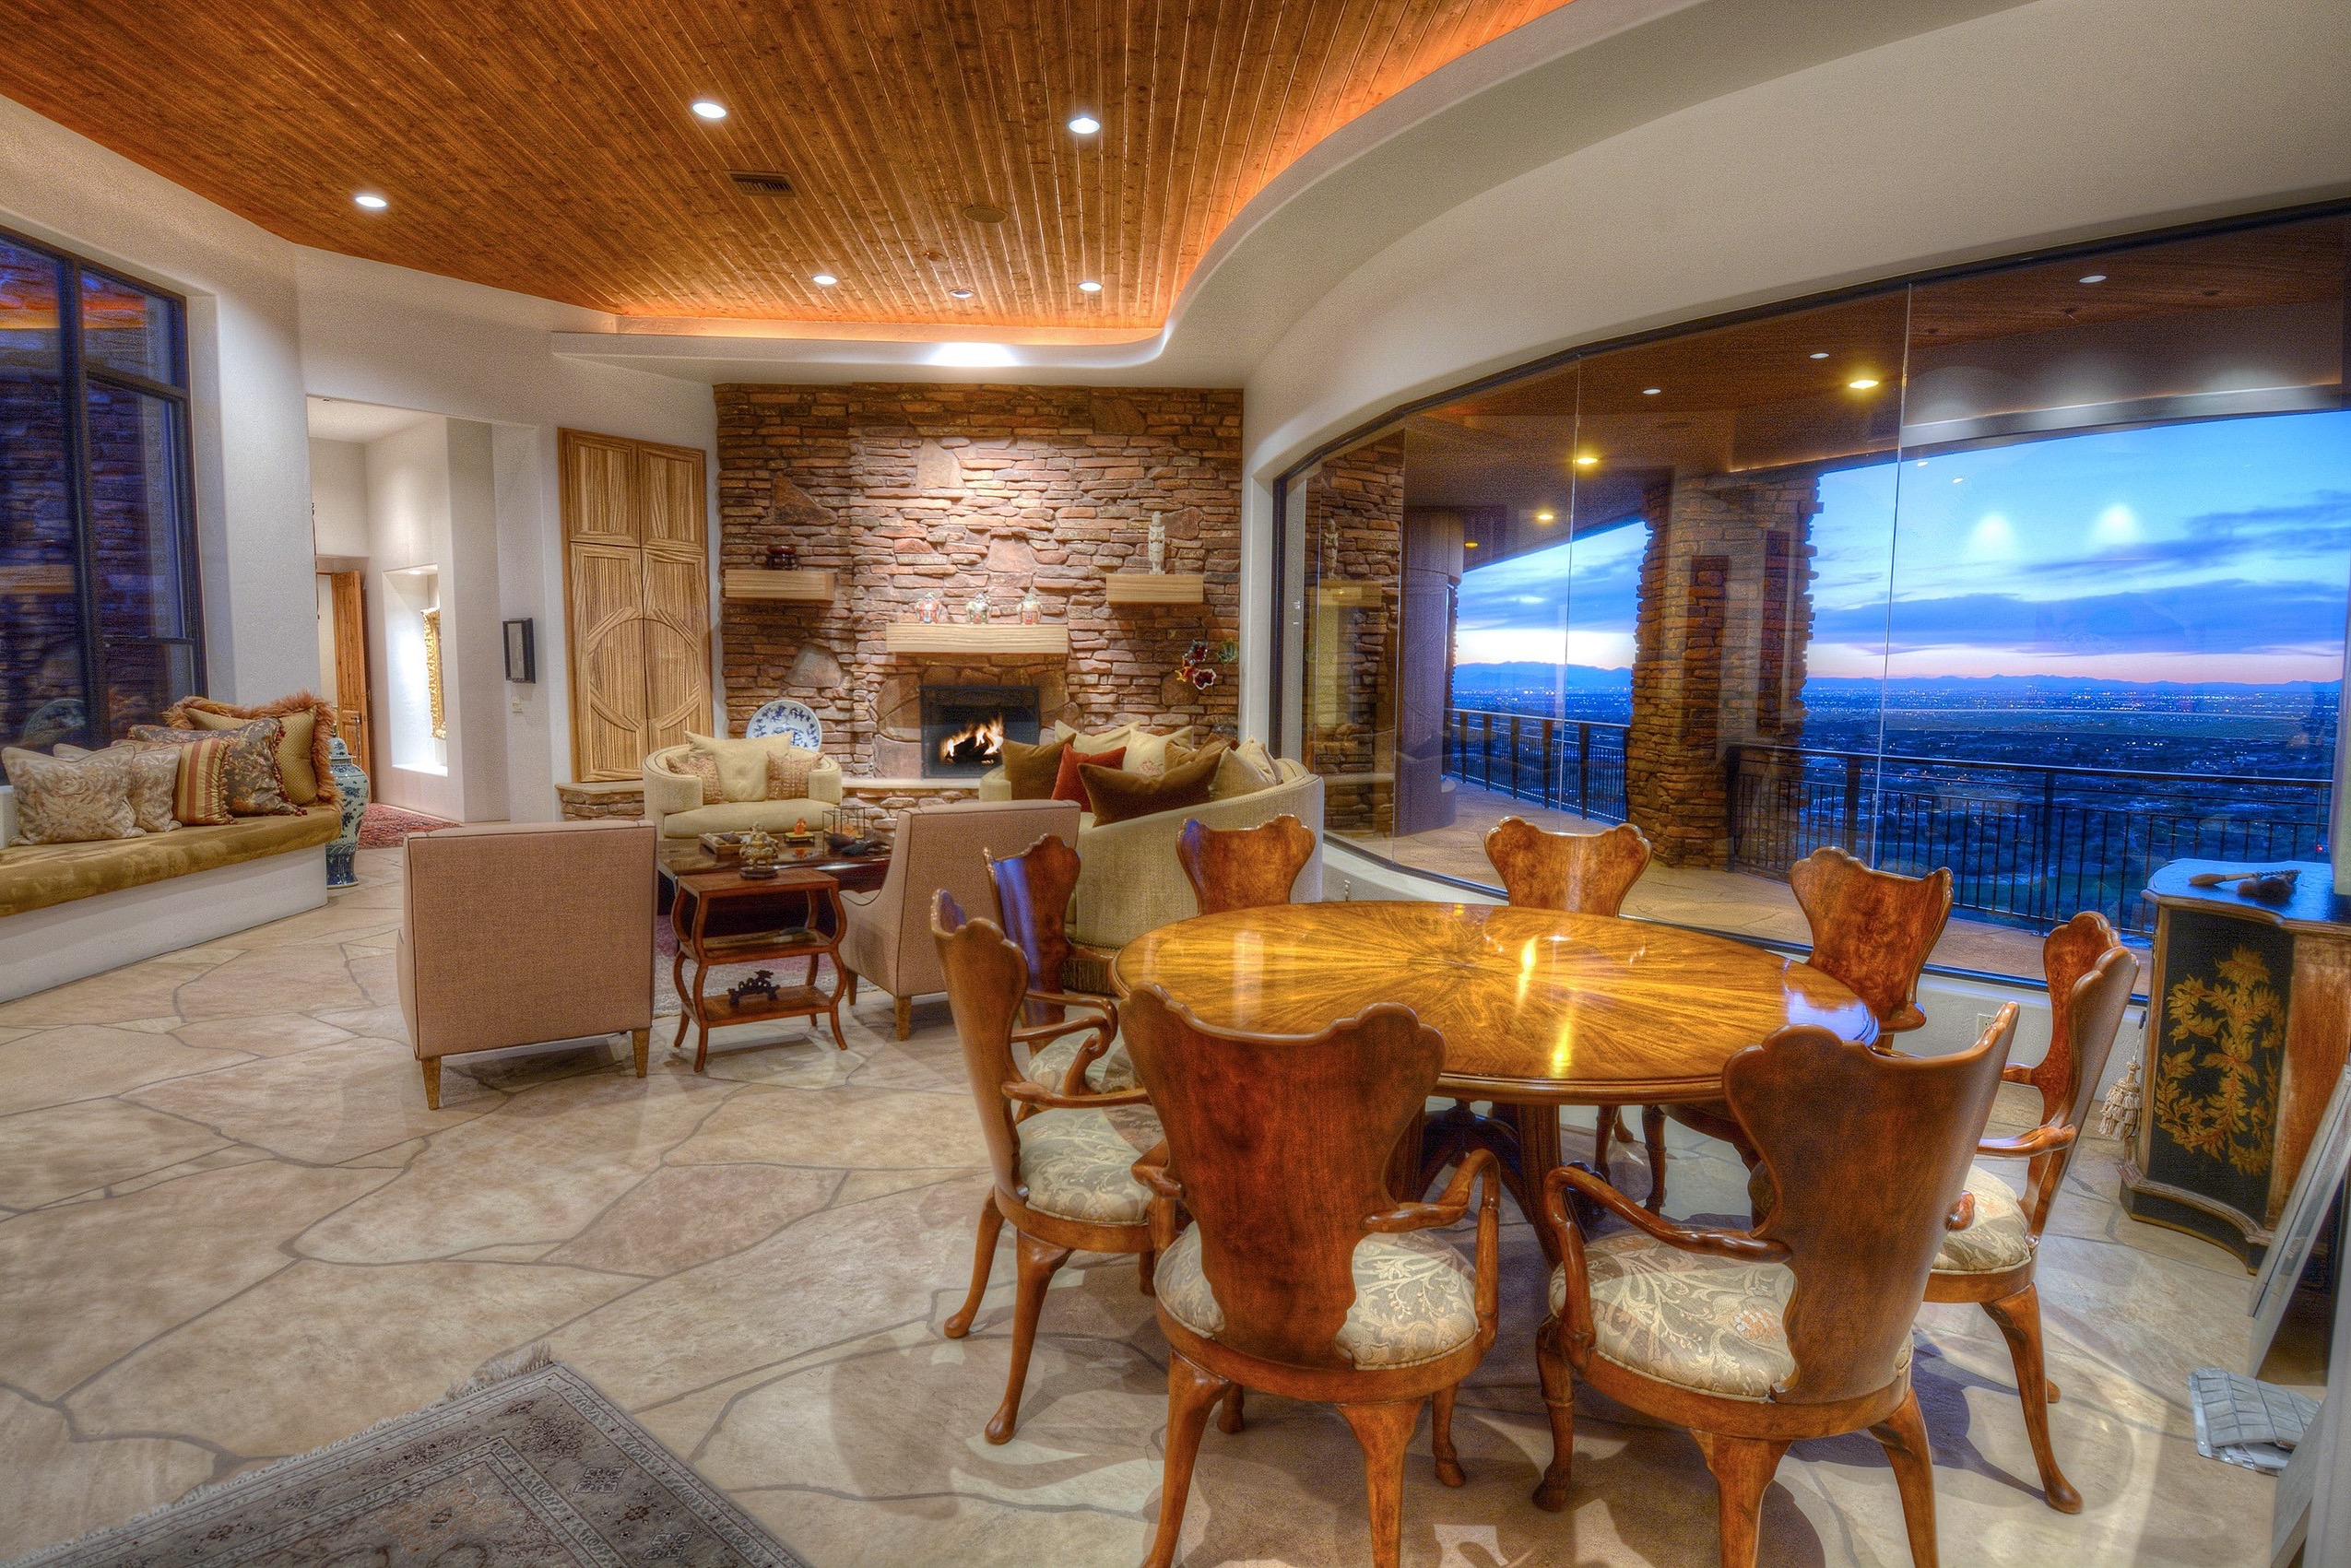 Southwestern Living And Dining Room Combo (View 11 of 11)